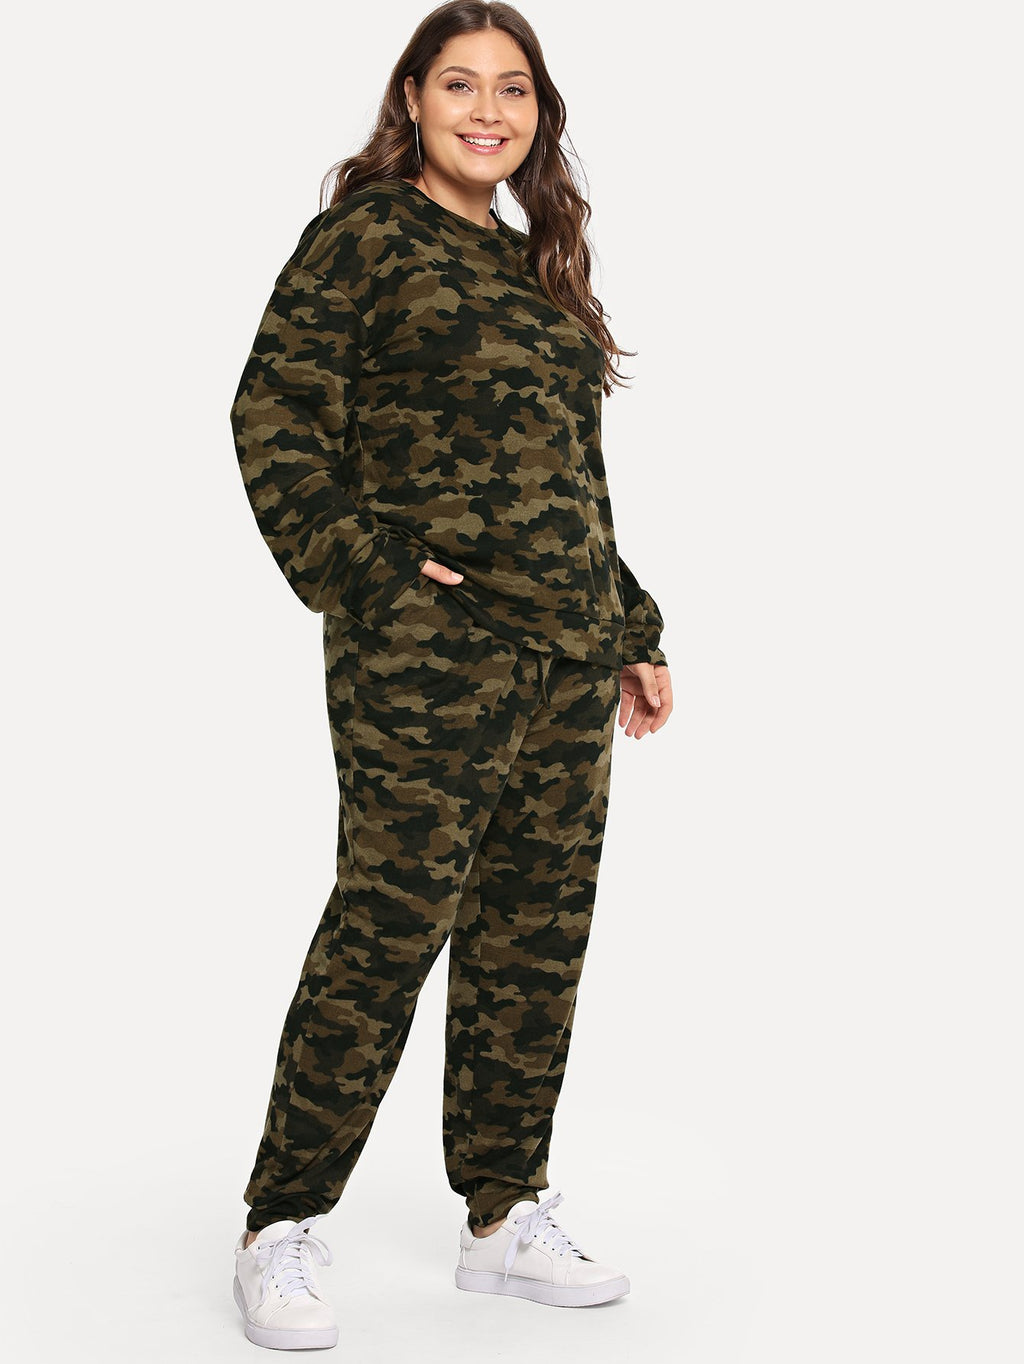 Plus Camo Print Top & Sweatpants Set-Sunshine's Boutique & Gifts